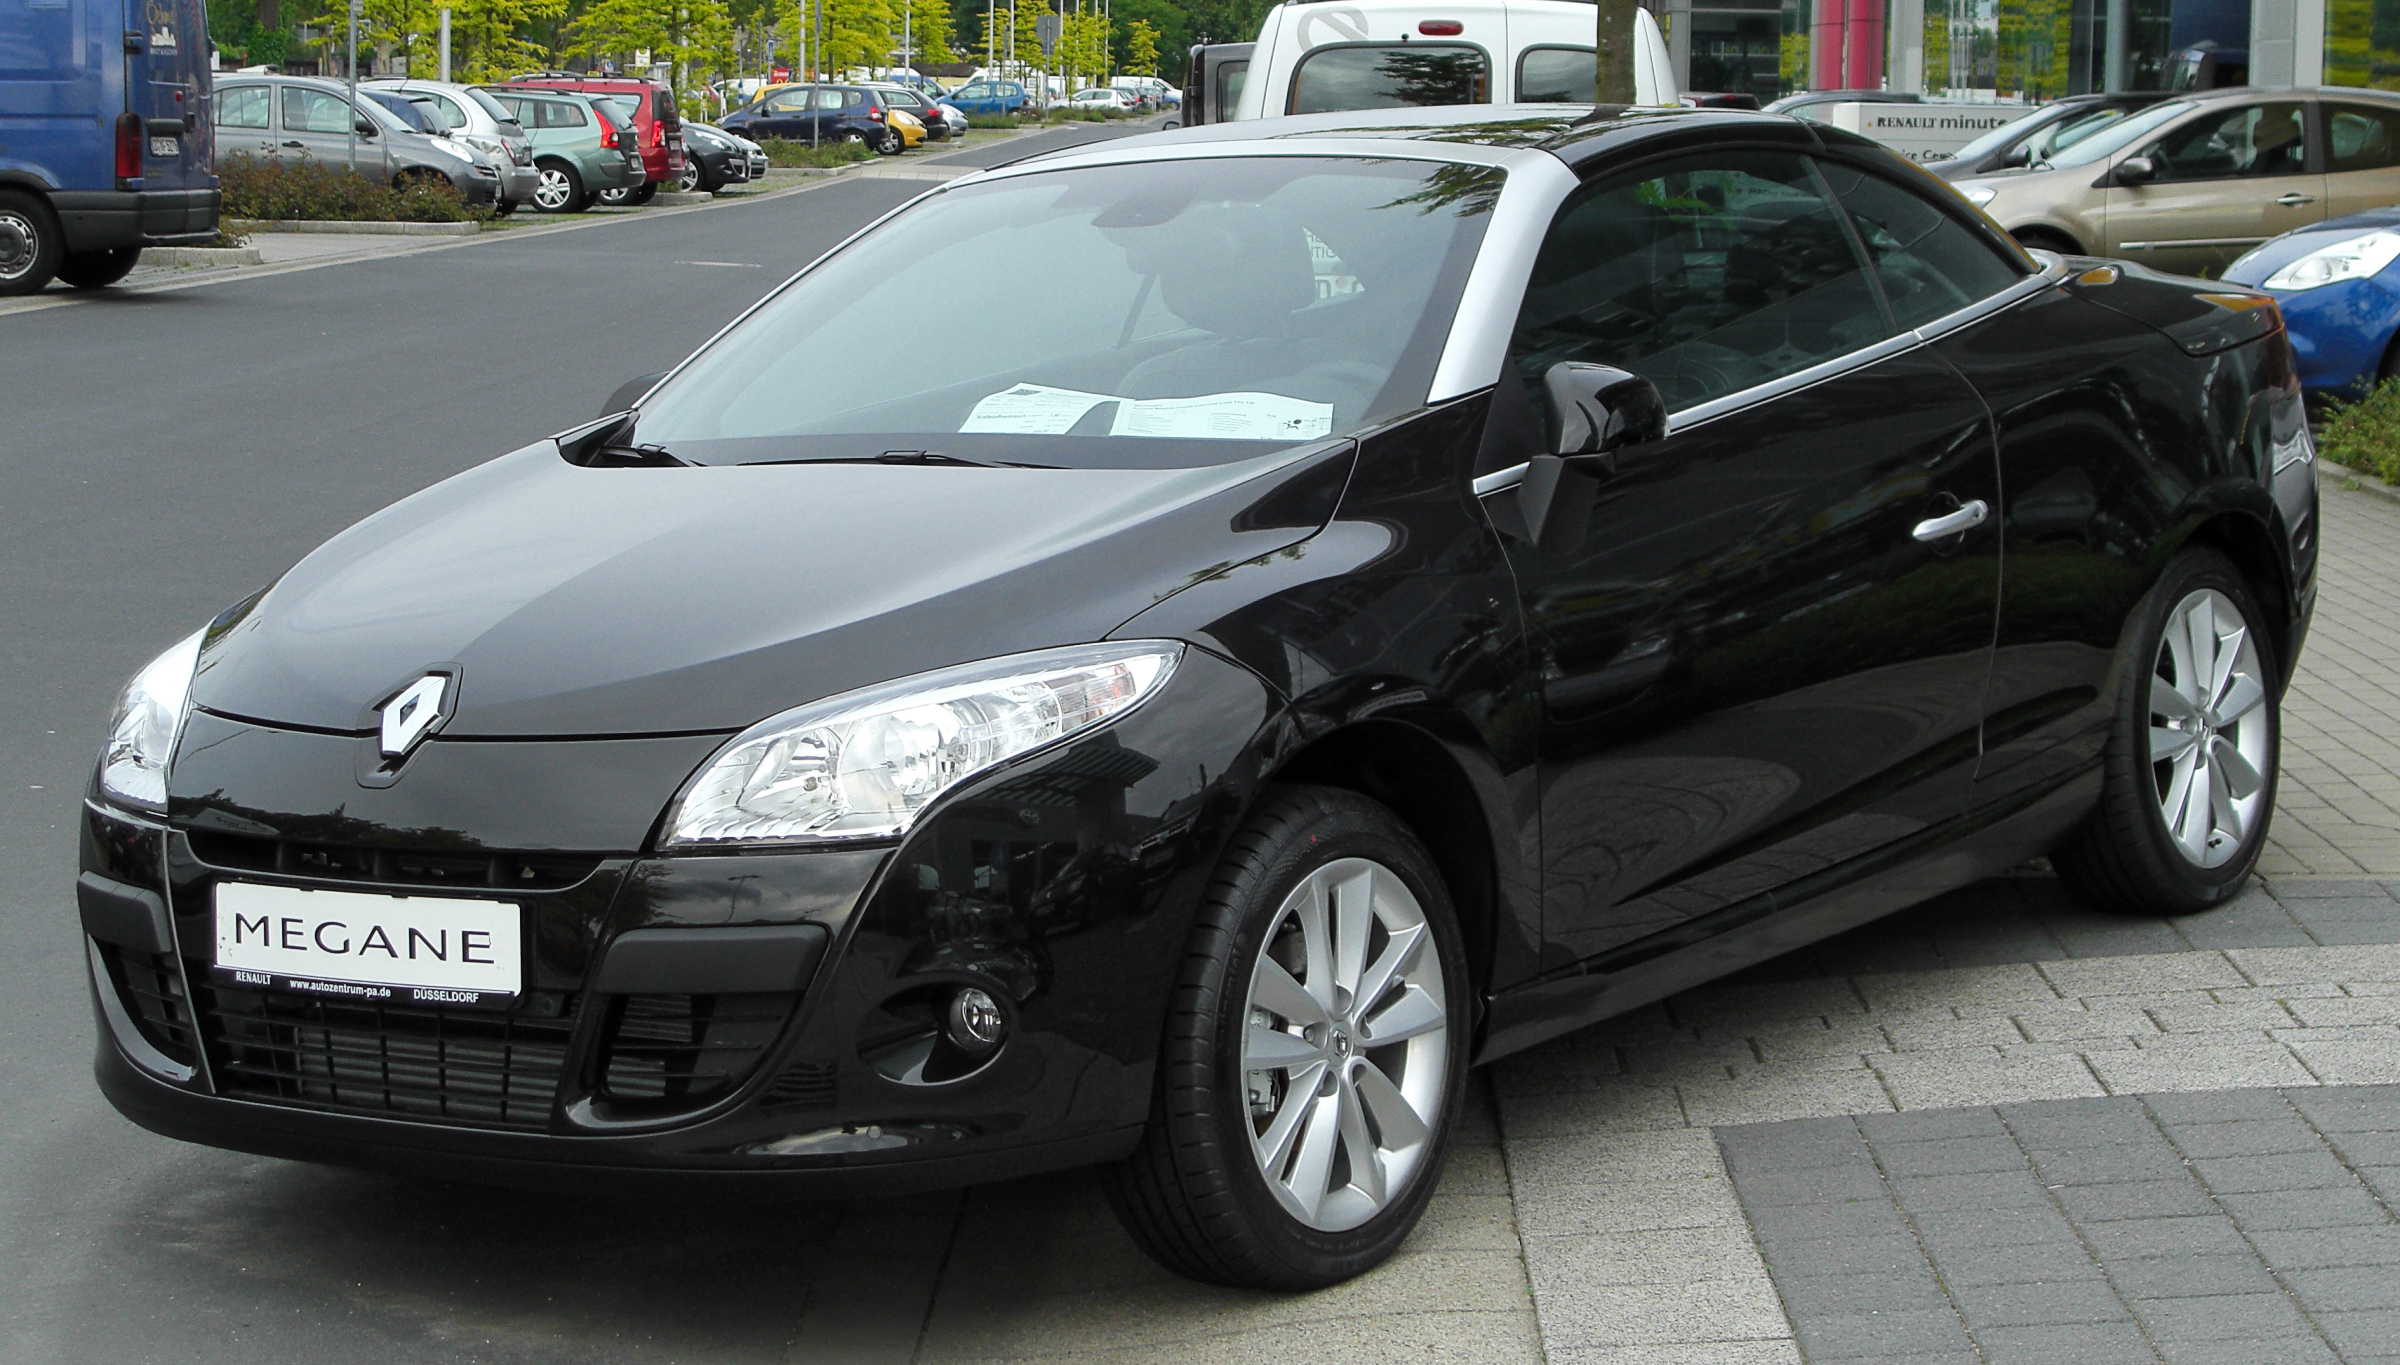 2010 renault megane iii cc pictures information and specs auto. Black Bedroom Furniture Sets. Home Design Ideas